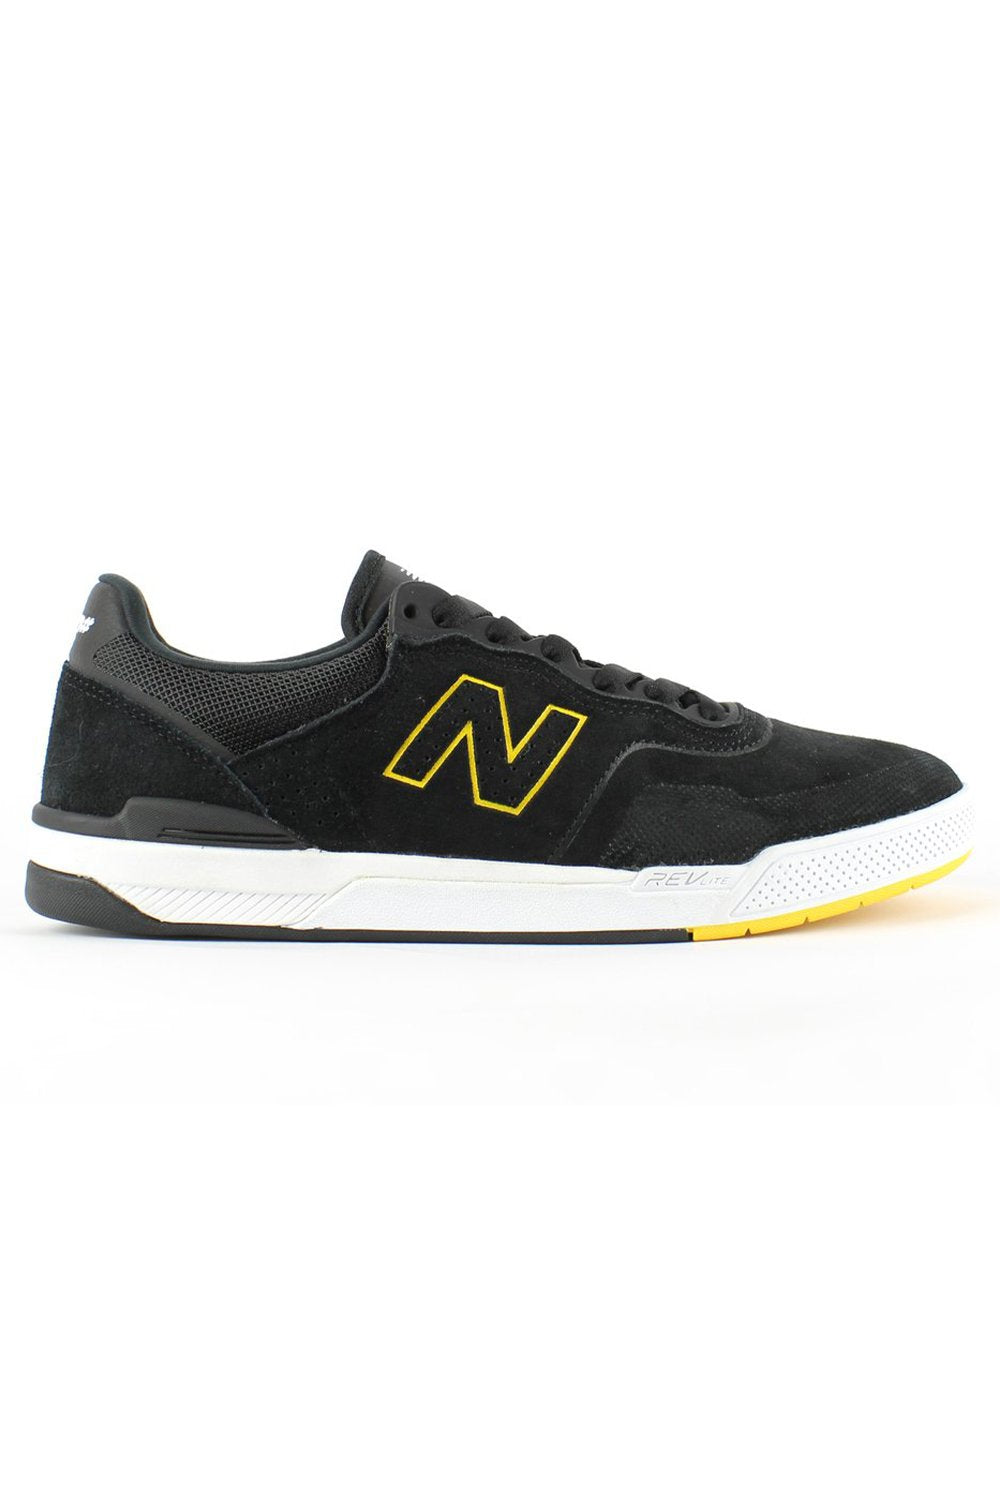 New Balance Numeric 913 Mens Shoes - Black Yellow